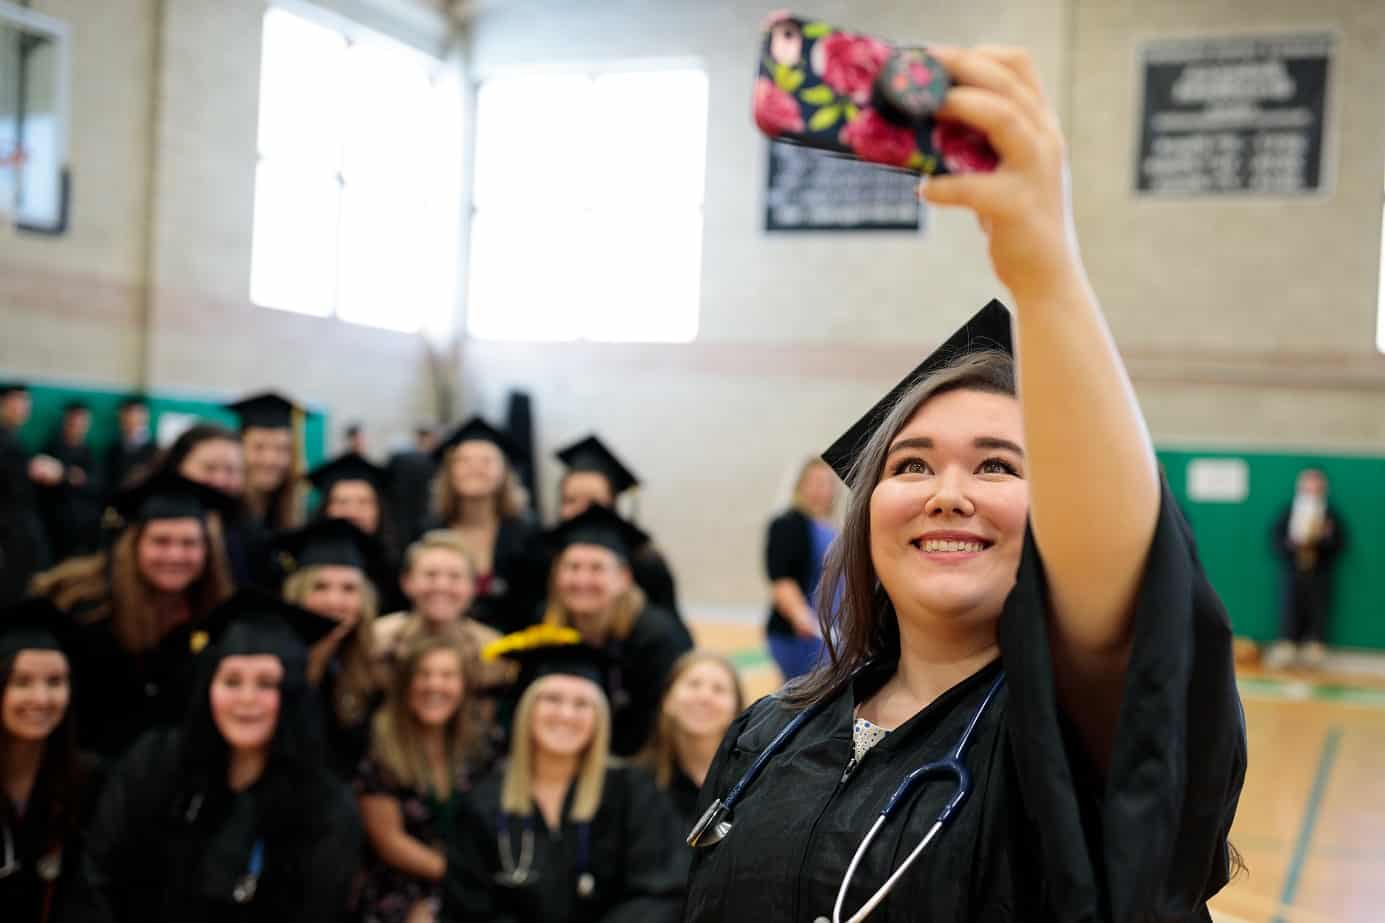 Female students, commencement, graduation, group posing for selfie